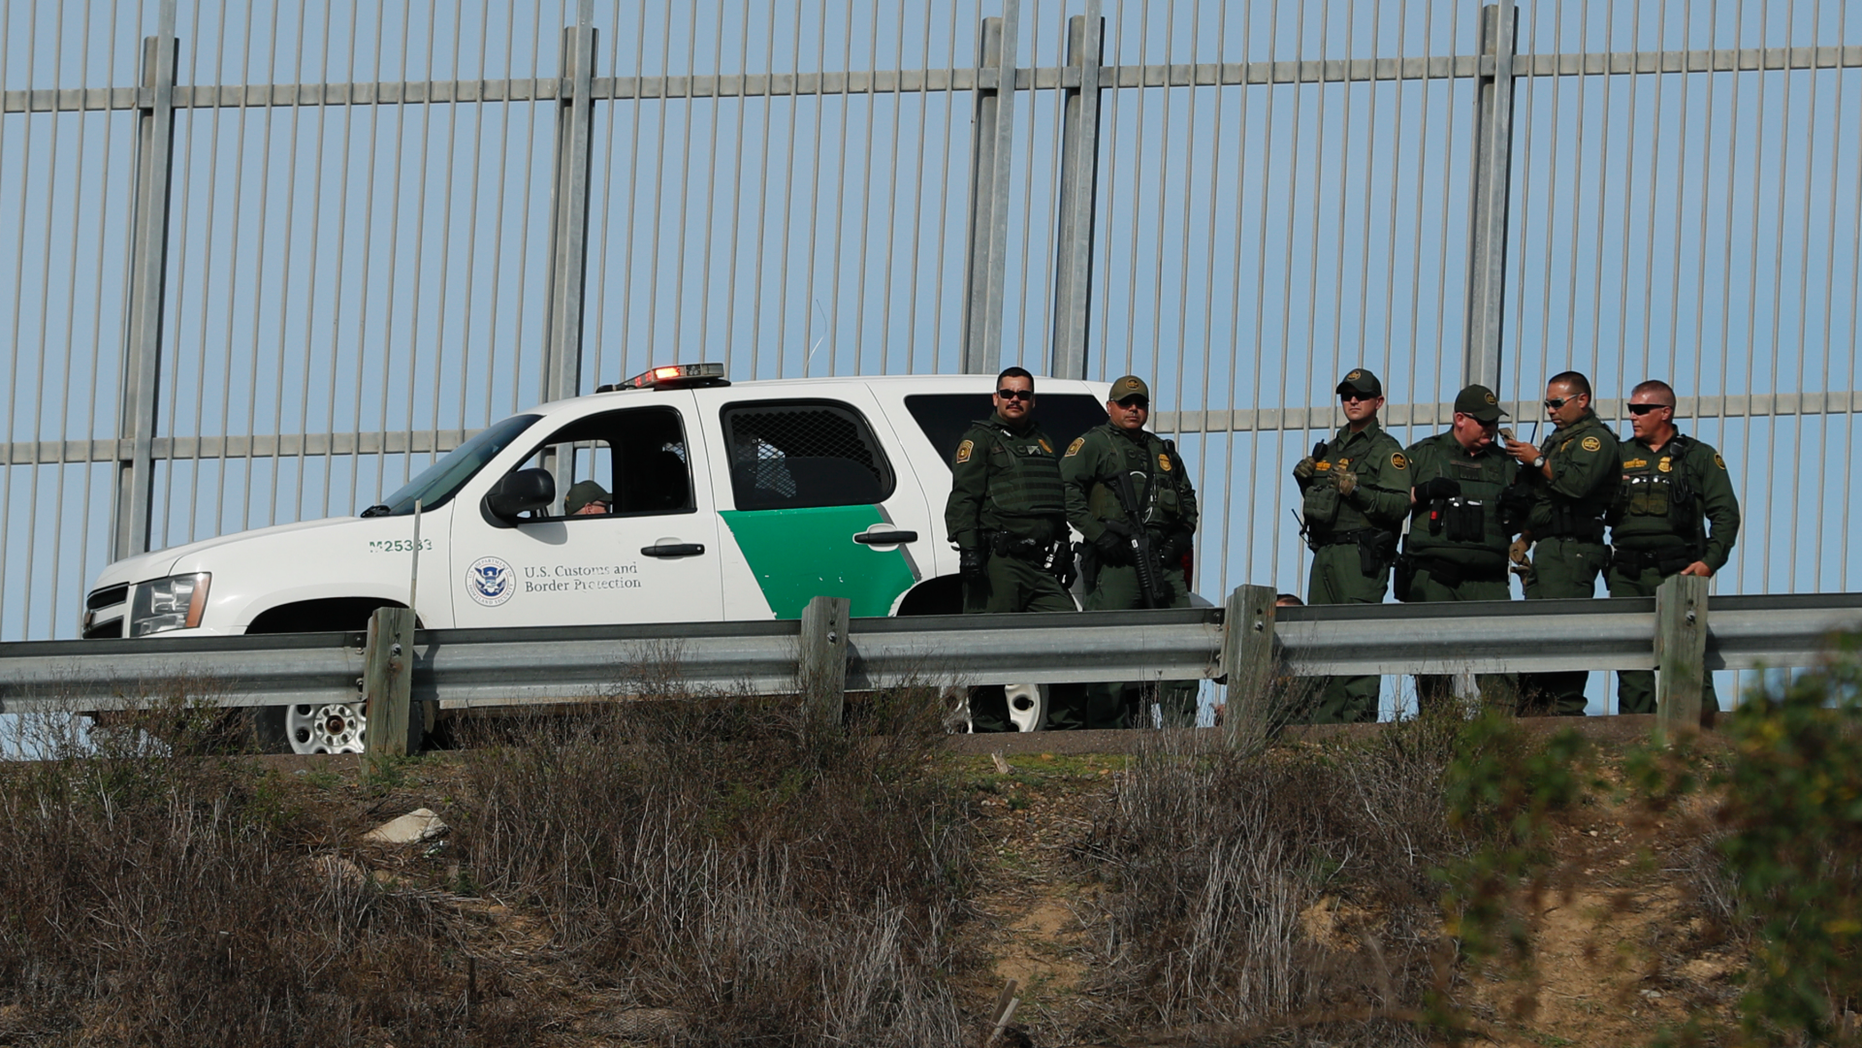 U.S. Border Patrol agents stand in front of a secondary fence in San Diego, California looking across border wall toward Mexico as they respond to a group of Central American migrants who crossed the border wall illegally, seen from across the wall in Tijuana, Mexico, Sunday, Dec. 9, 2018. Discouraged by the long wait to apply for asylum through official ports of entry, many Central American migrants from recent caravans are choosing to cross the U.S. border wall illegally and hand themselves in to Border Patrol agents to request asylum. (AP Photo/Rebecca Blackwell)